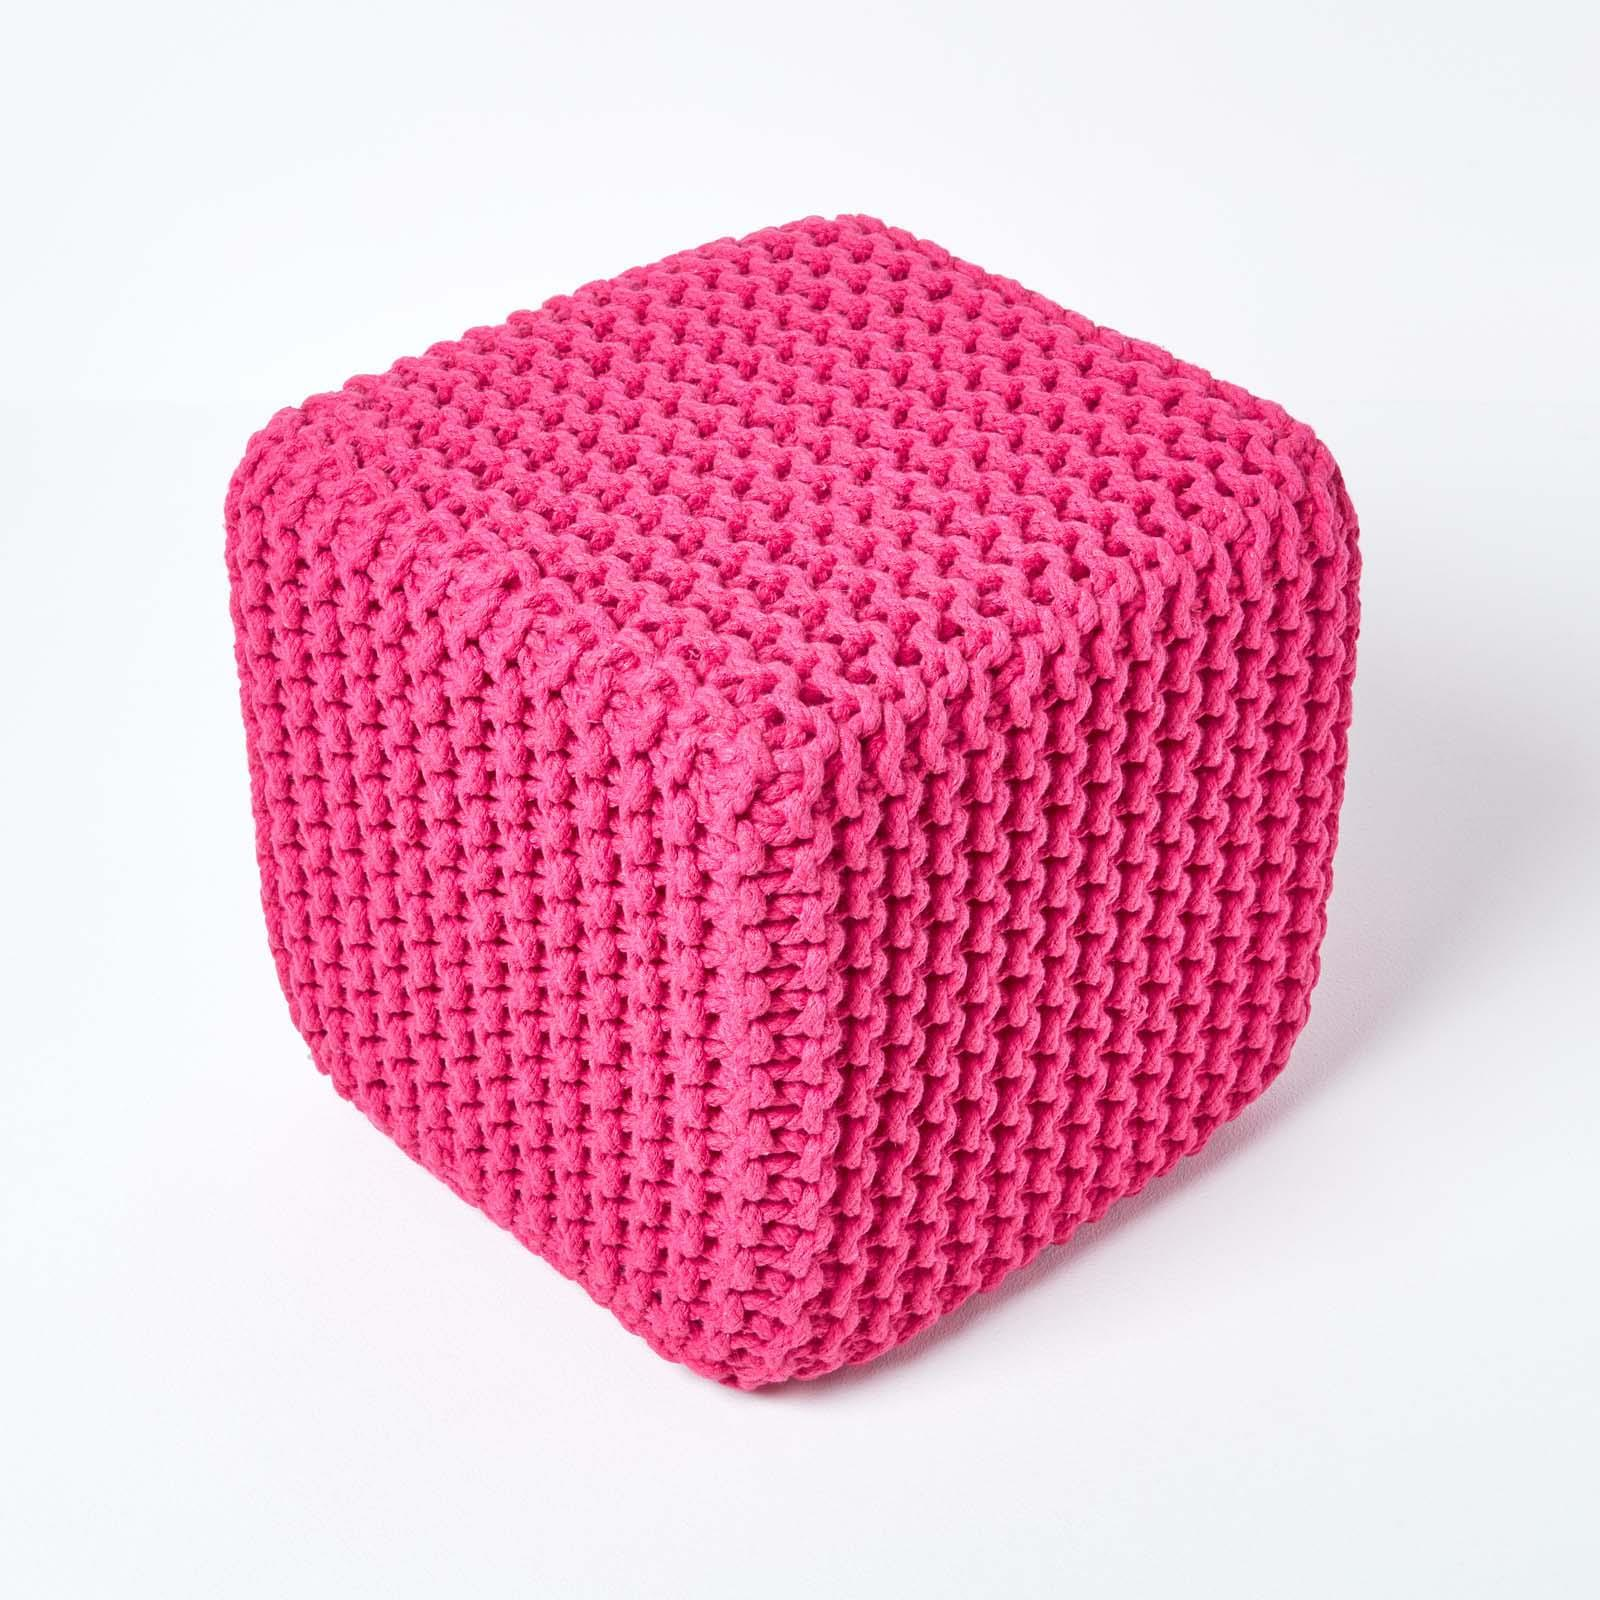 Hand-Knitted-100-Cotton-Pouffes-Round-Sphere-Or-Cube-Square-Chunky-Footstools thumbnail 69